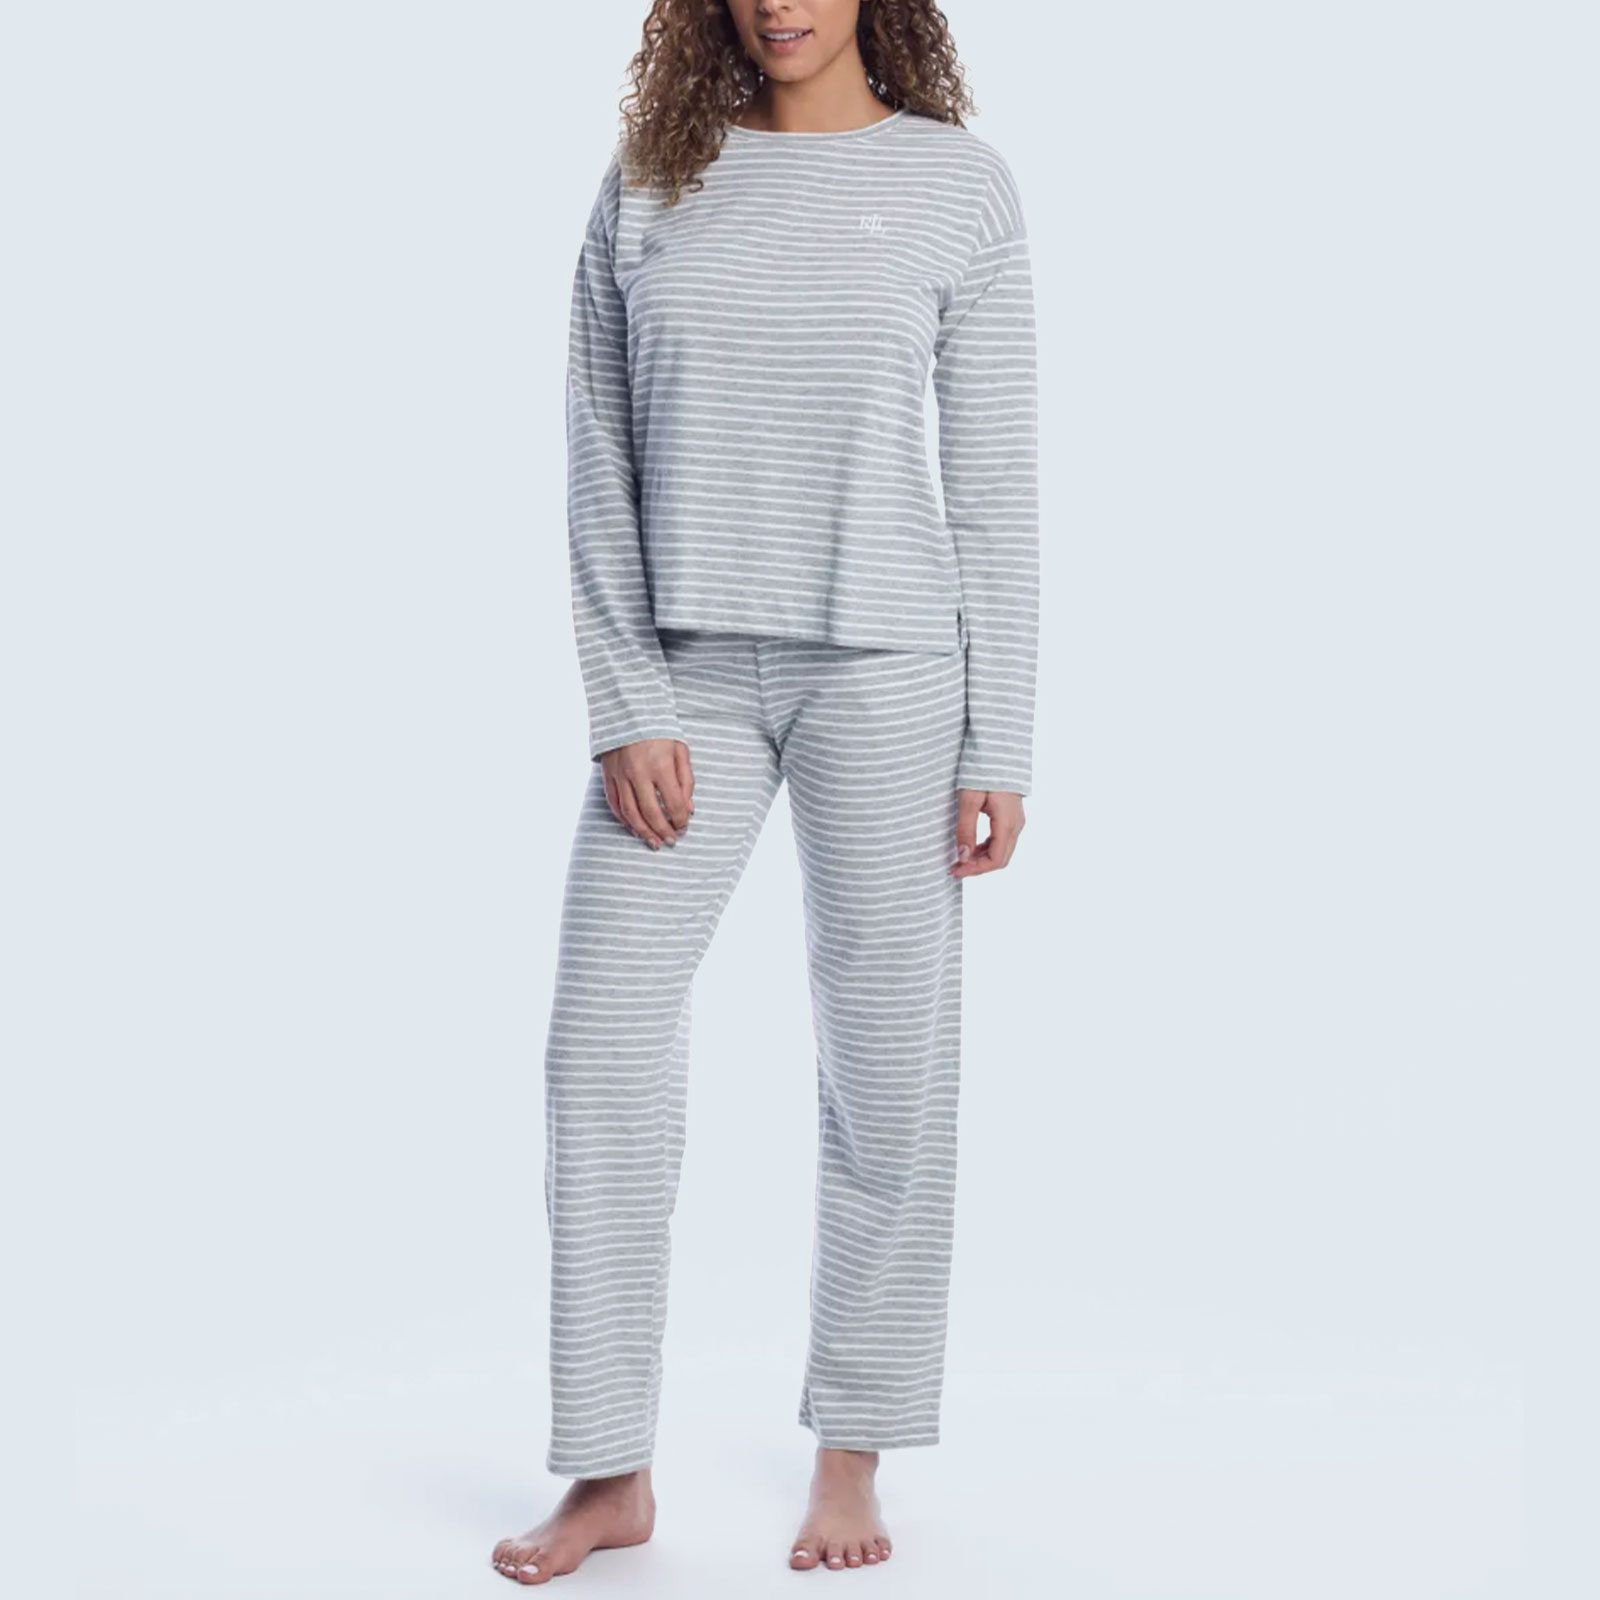 Lauren Ralph Lauren Striped Knit Pajama Set from Bare Necessities